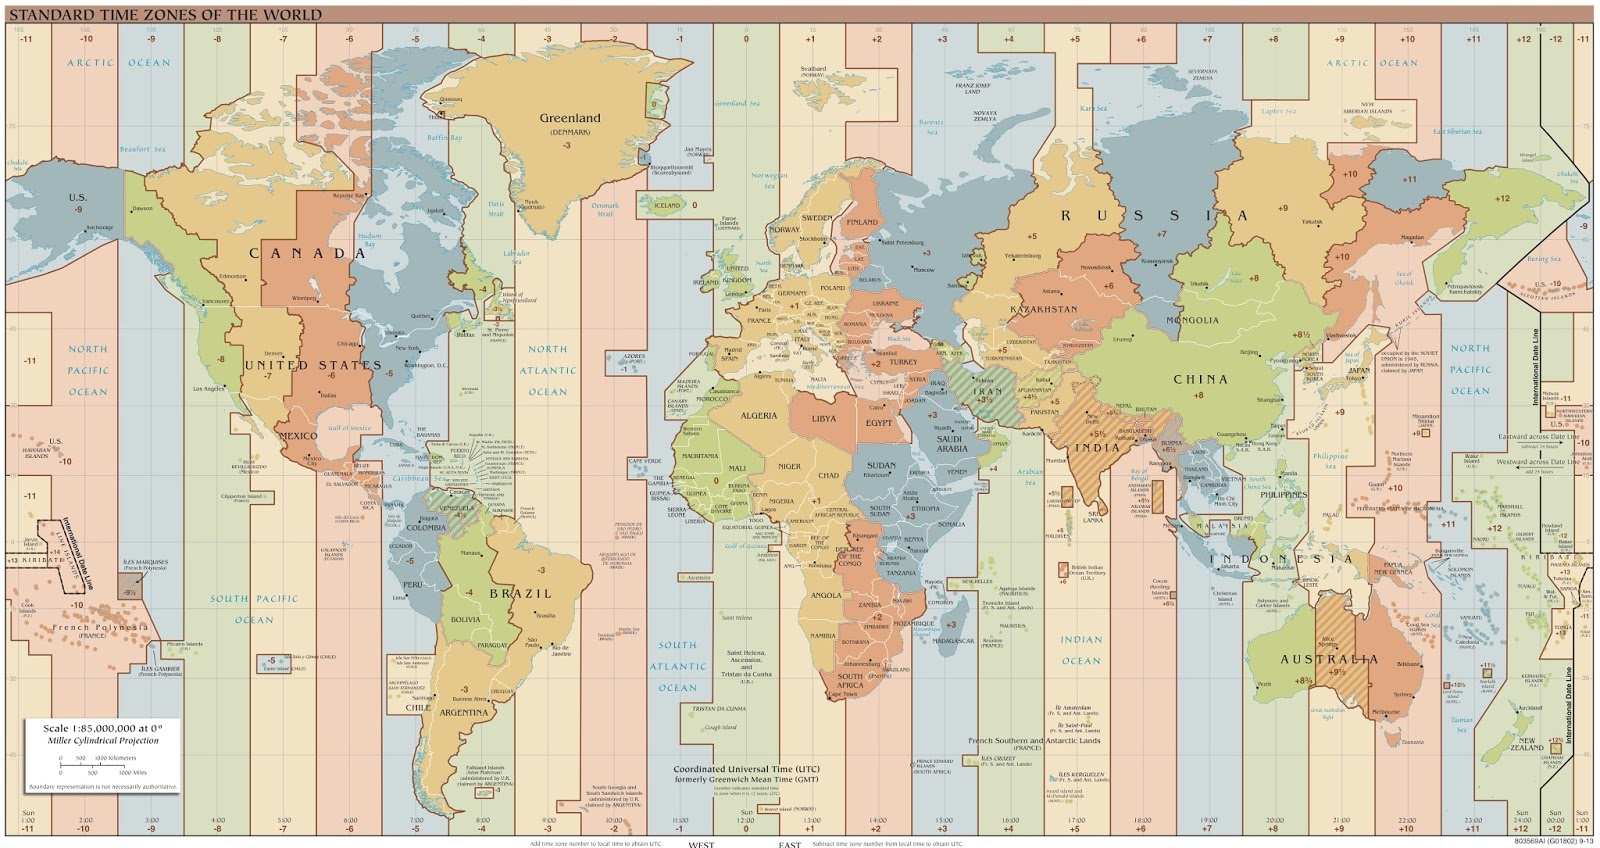 Time zone map (2015)